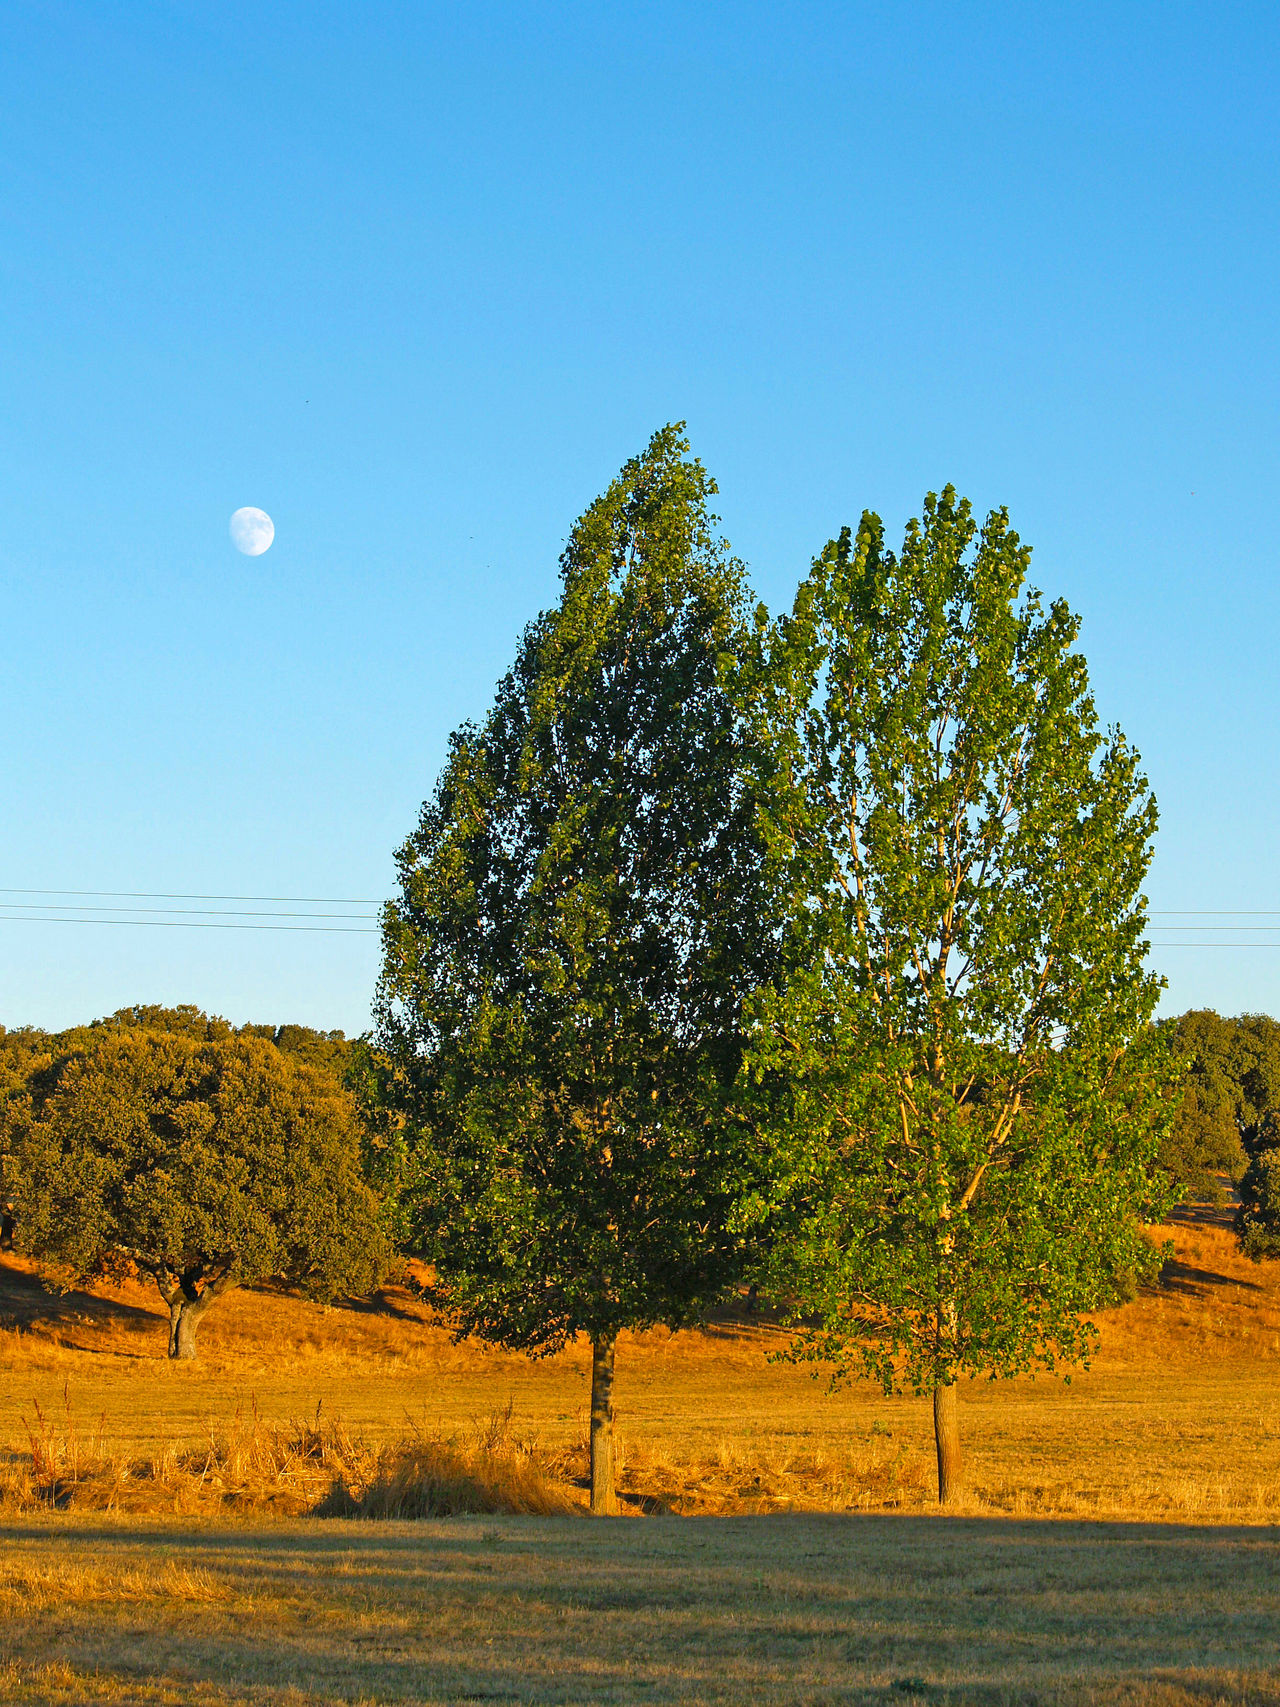 Beauty In Nature Blue Day Dehesa Environment Forest Growth Landscape Moon Moon Moonlight Nature Nature No People Outdoors Pasture Pasture, Paddock, Grassland, Pastureland Populus Populus Nigra Scenics Sky Tranquil Scene Tranquility Tree